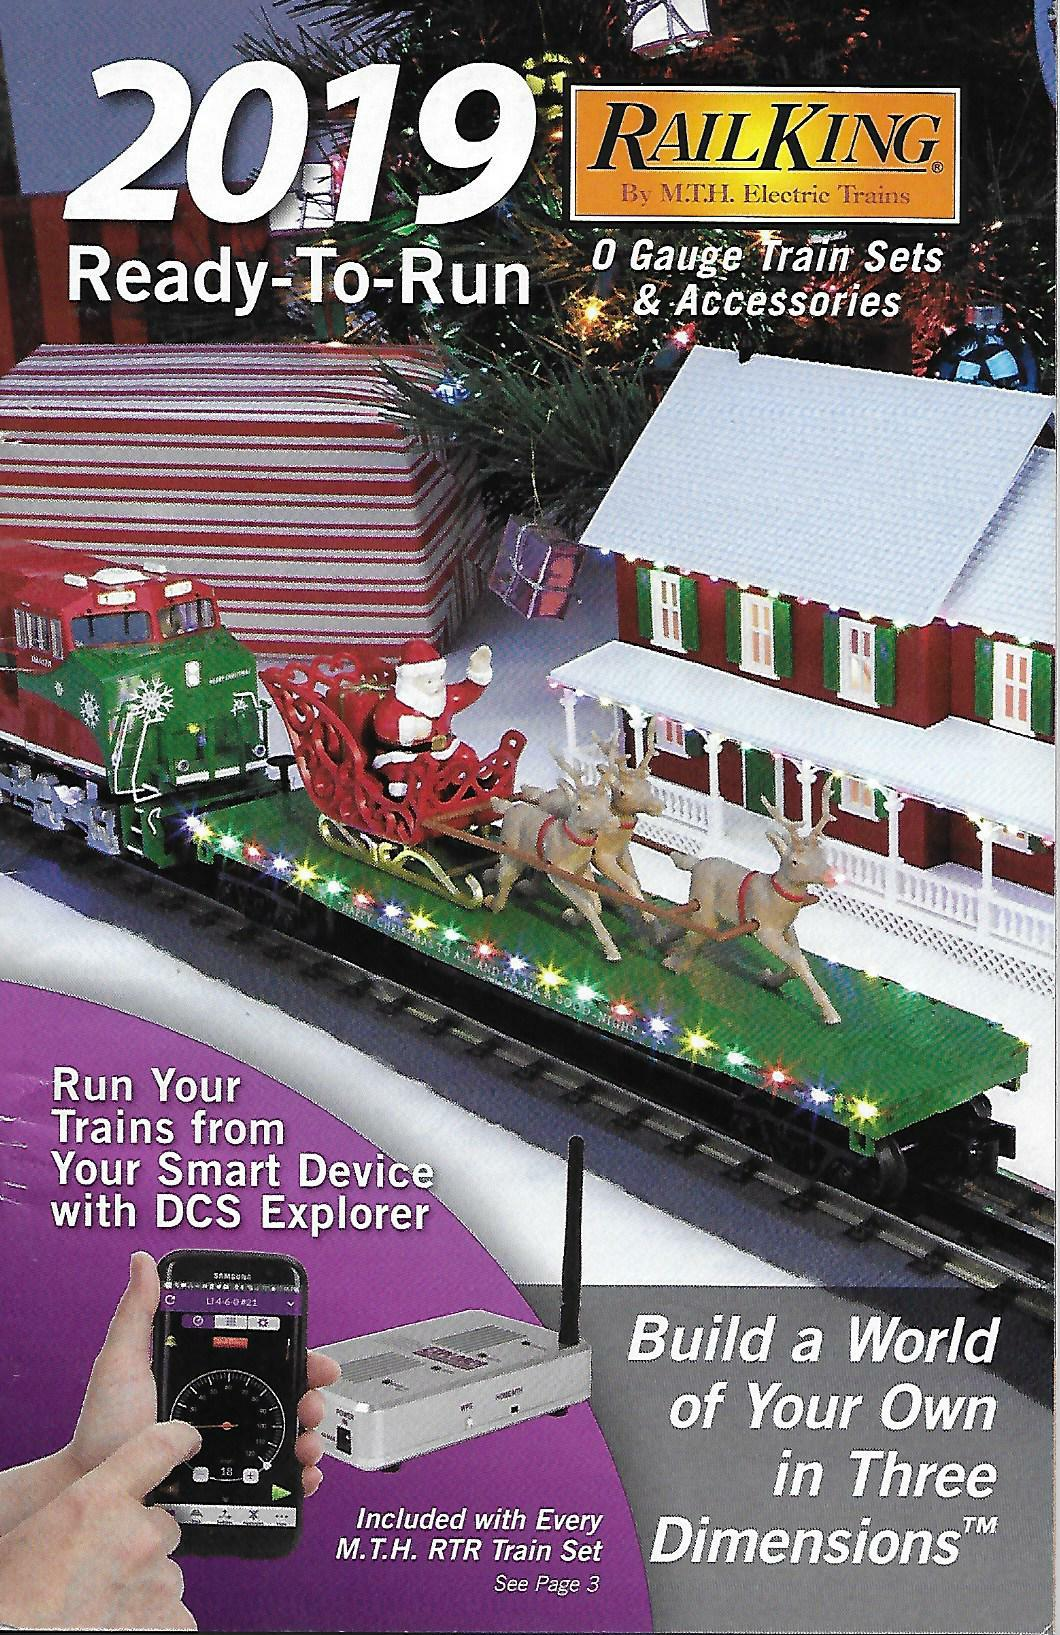 MTH 2019 Ready-To-Run Train Sets & Accessories Catalog image